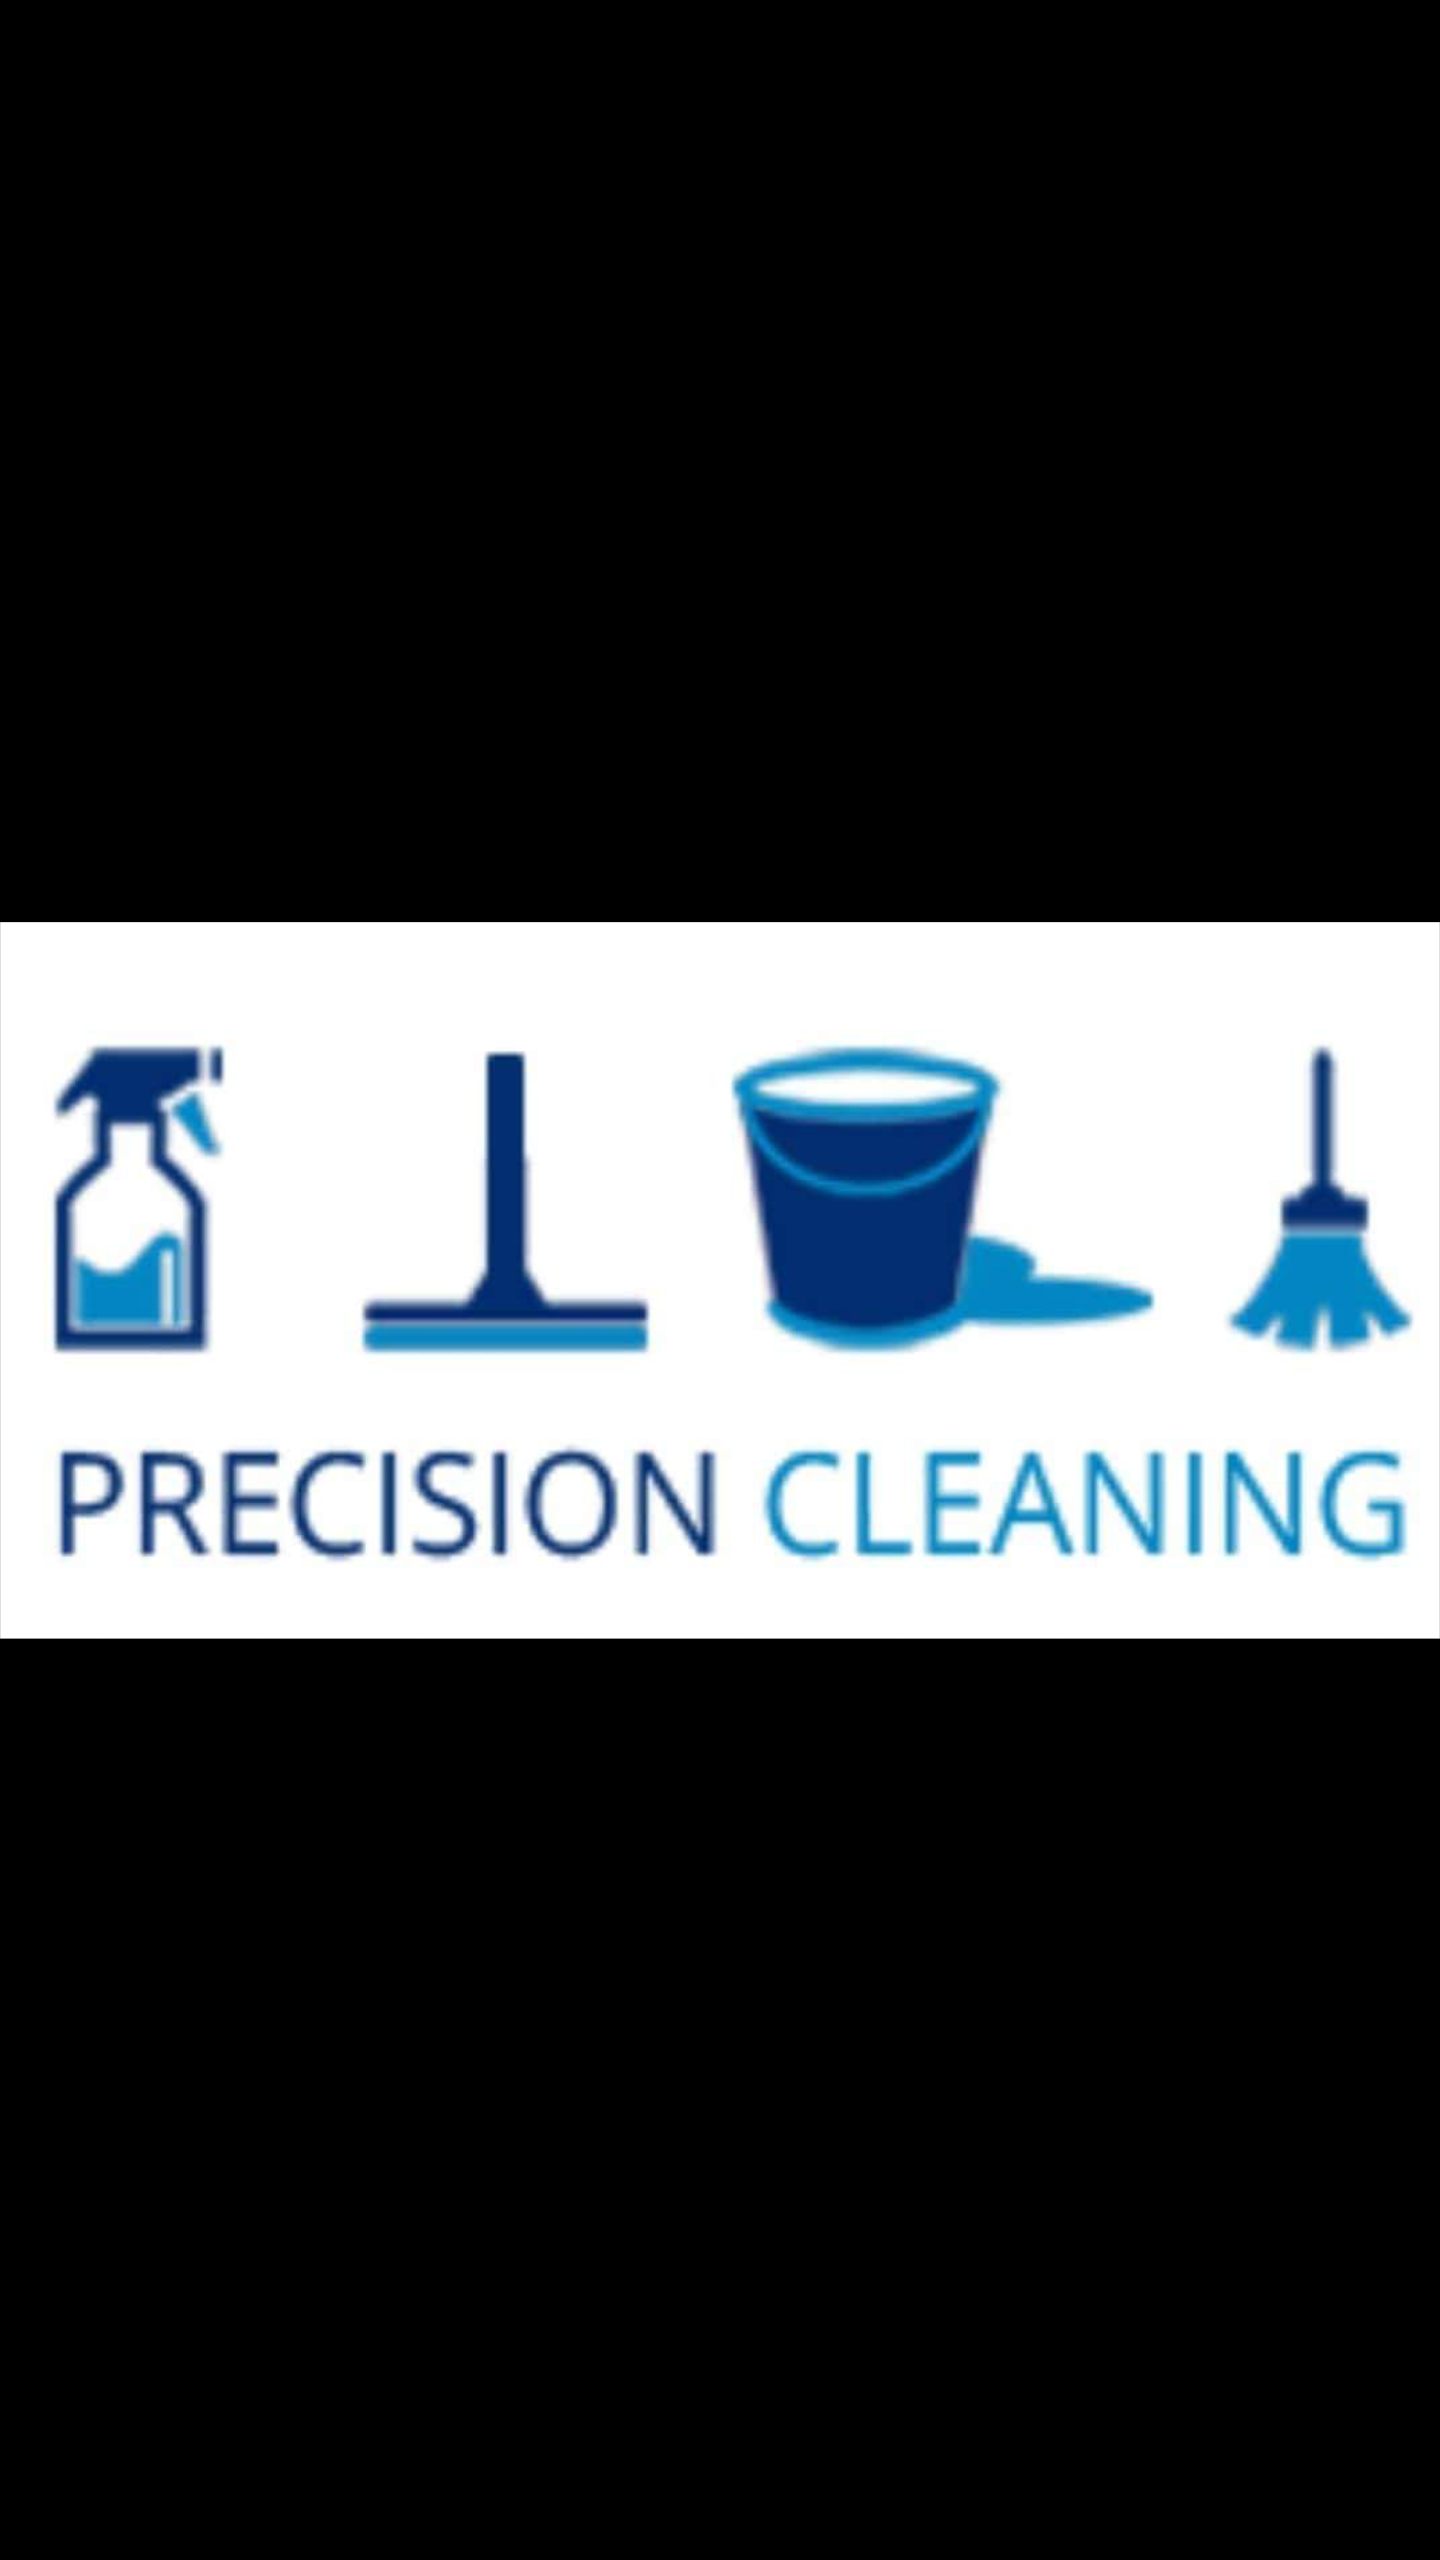 Precision cleaning for all your cleaning needs  1